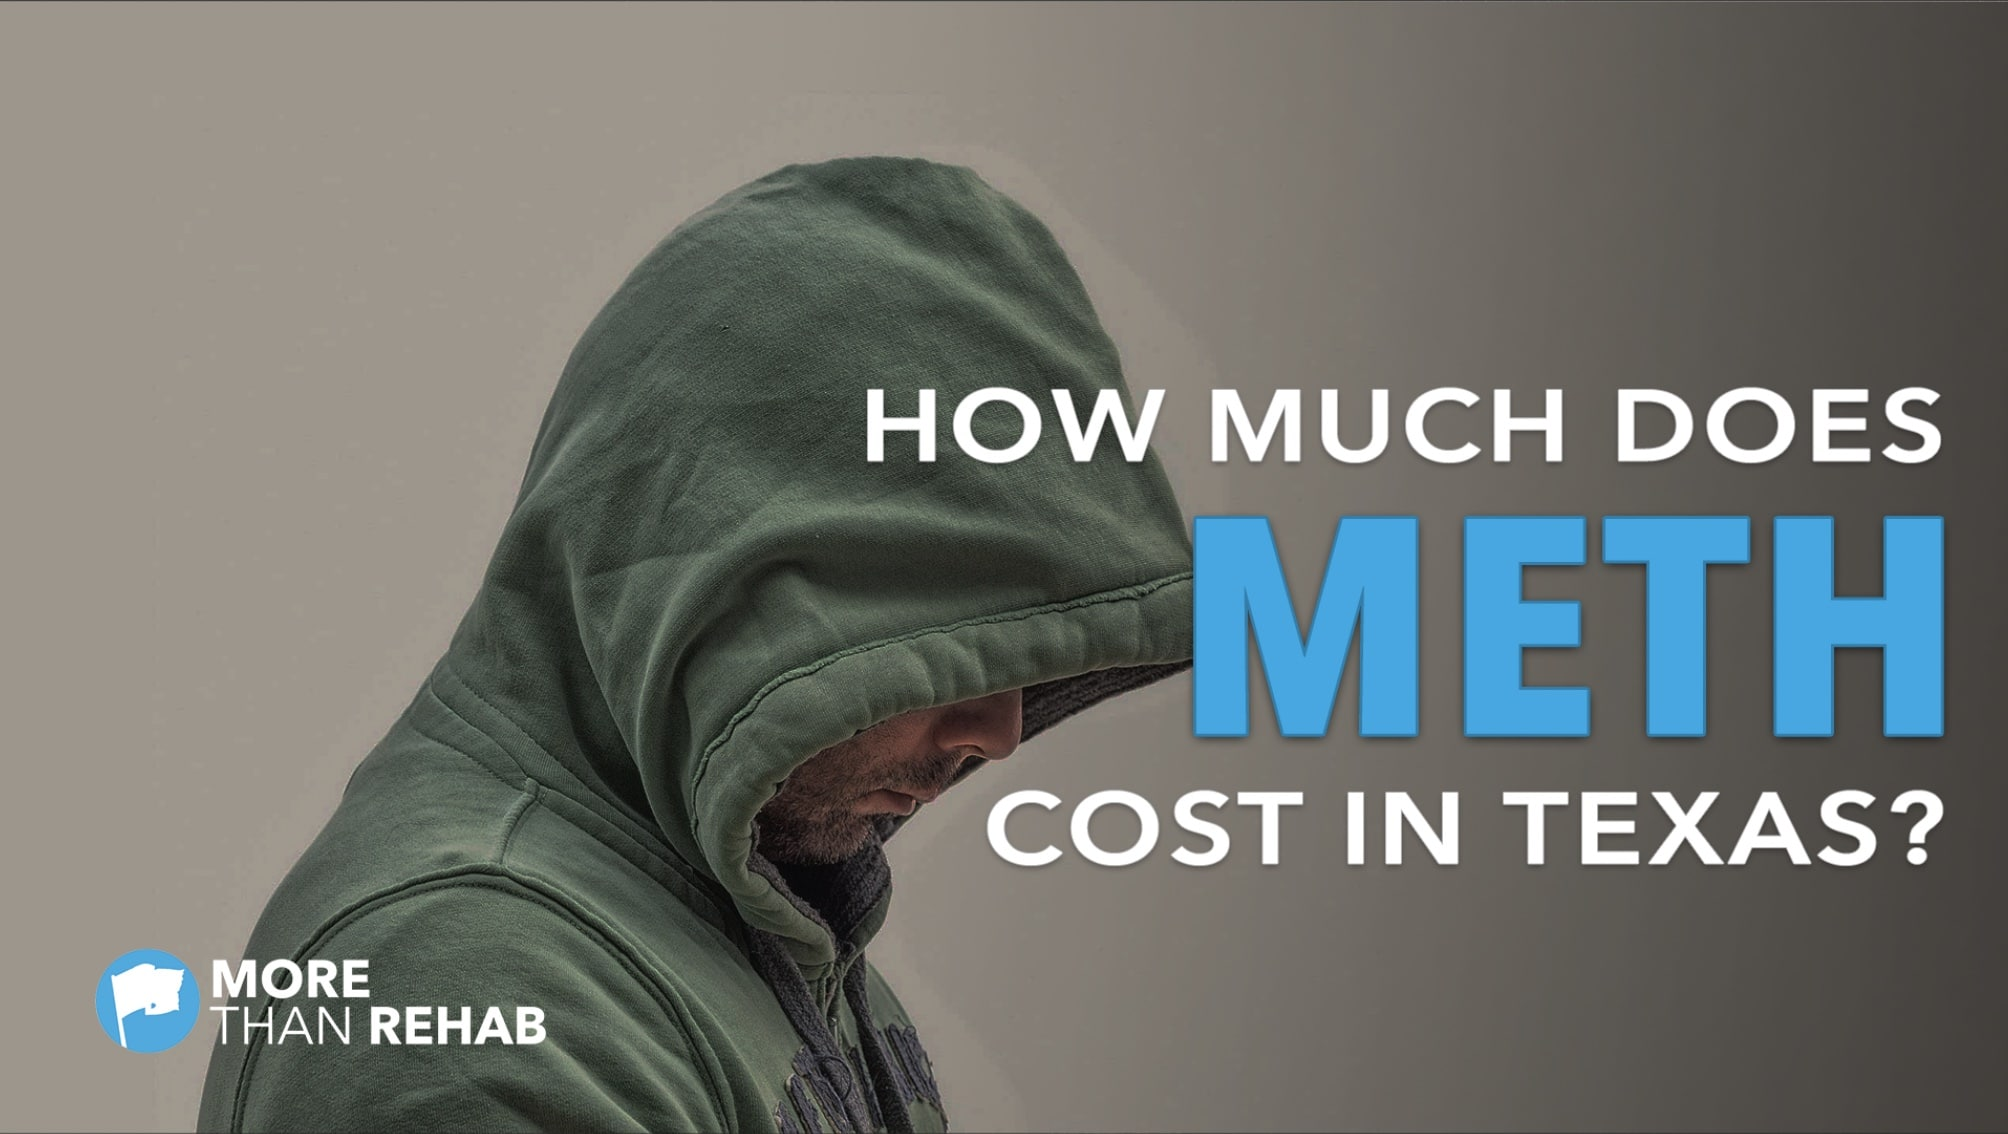 how-much-does-meth-cost-in-Texas-methamphetamine-drug-use-costs